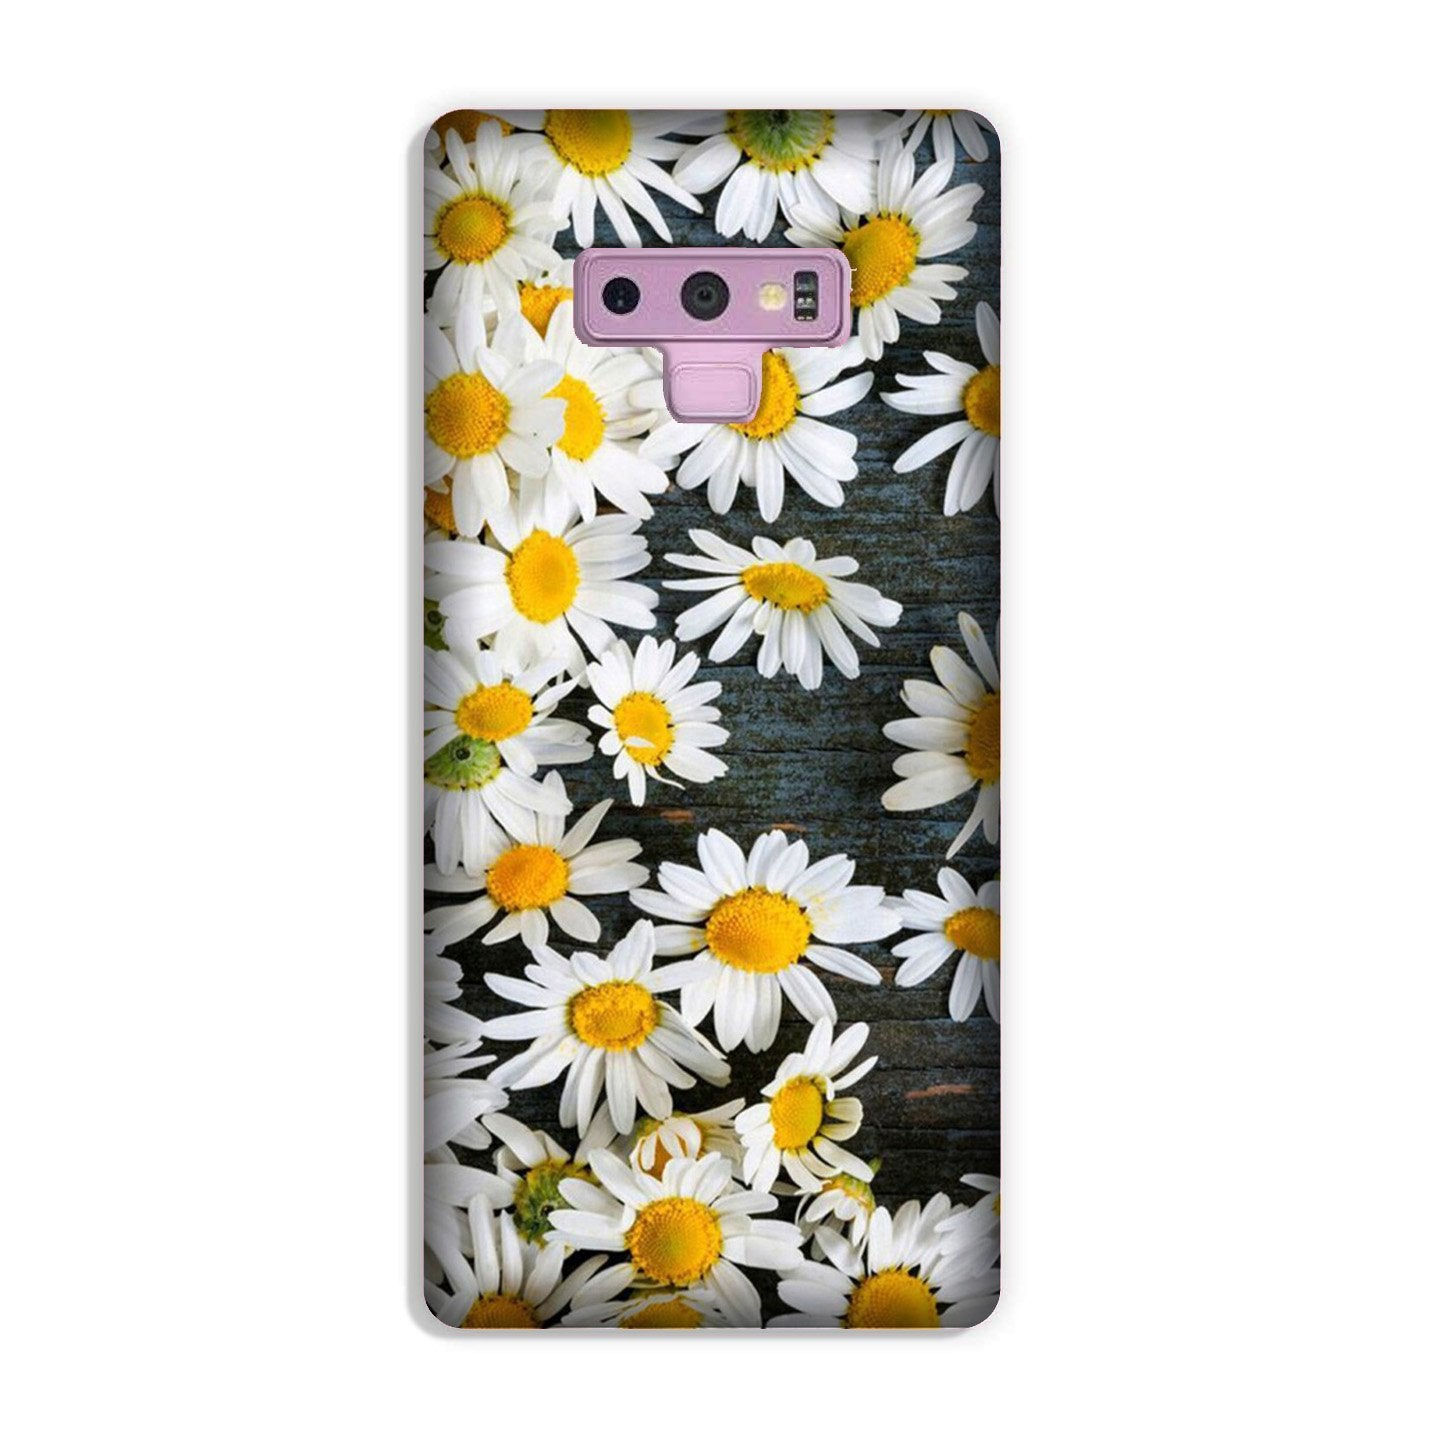 White flowers2 Case for Galaxy Note 9